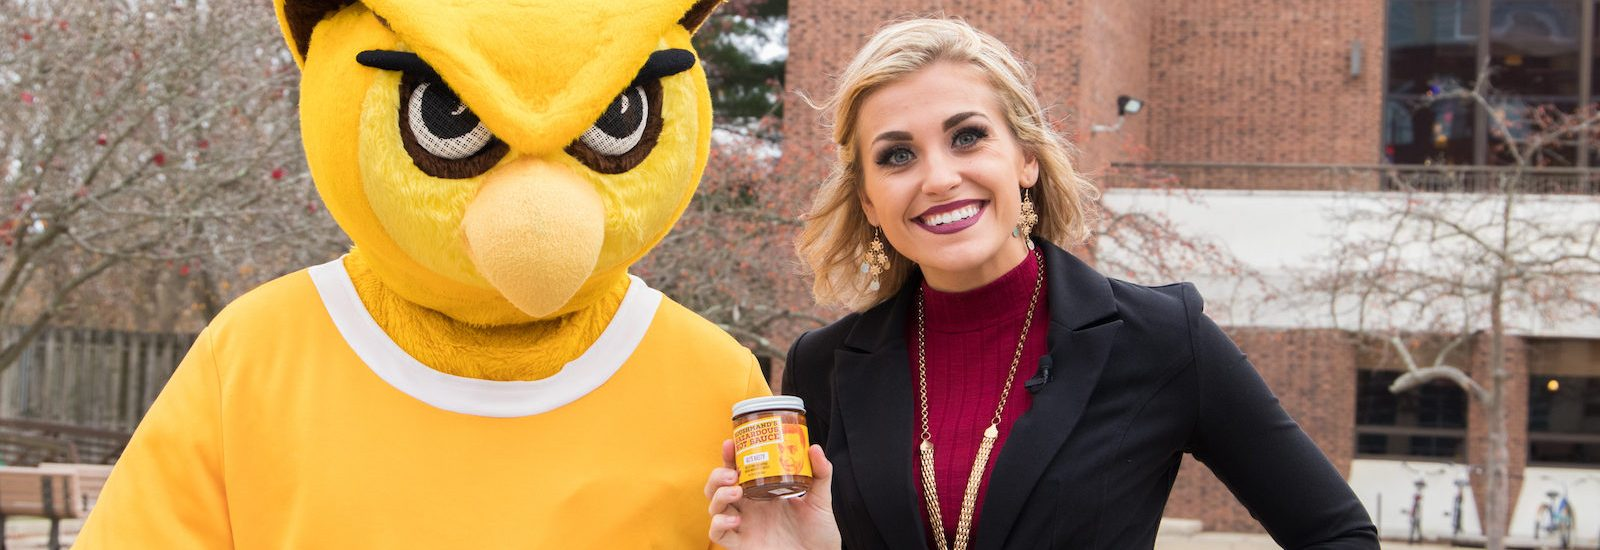 Rowan student stands next to the prof holding hot sauce